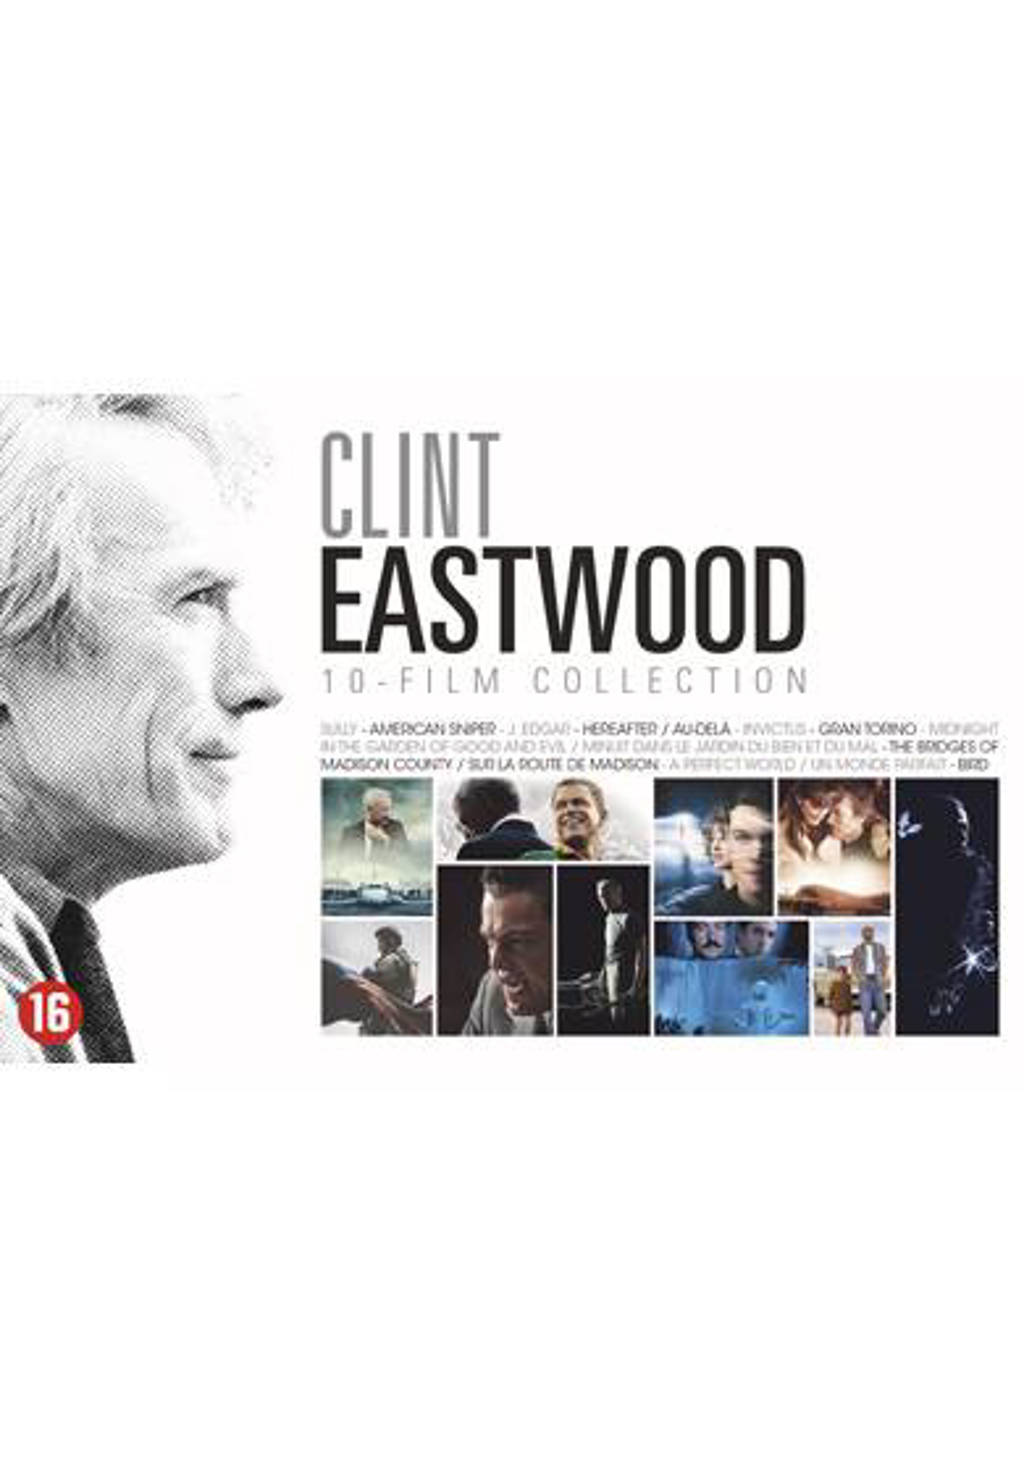 Clint Eastwood - 10 film collection (DVD)